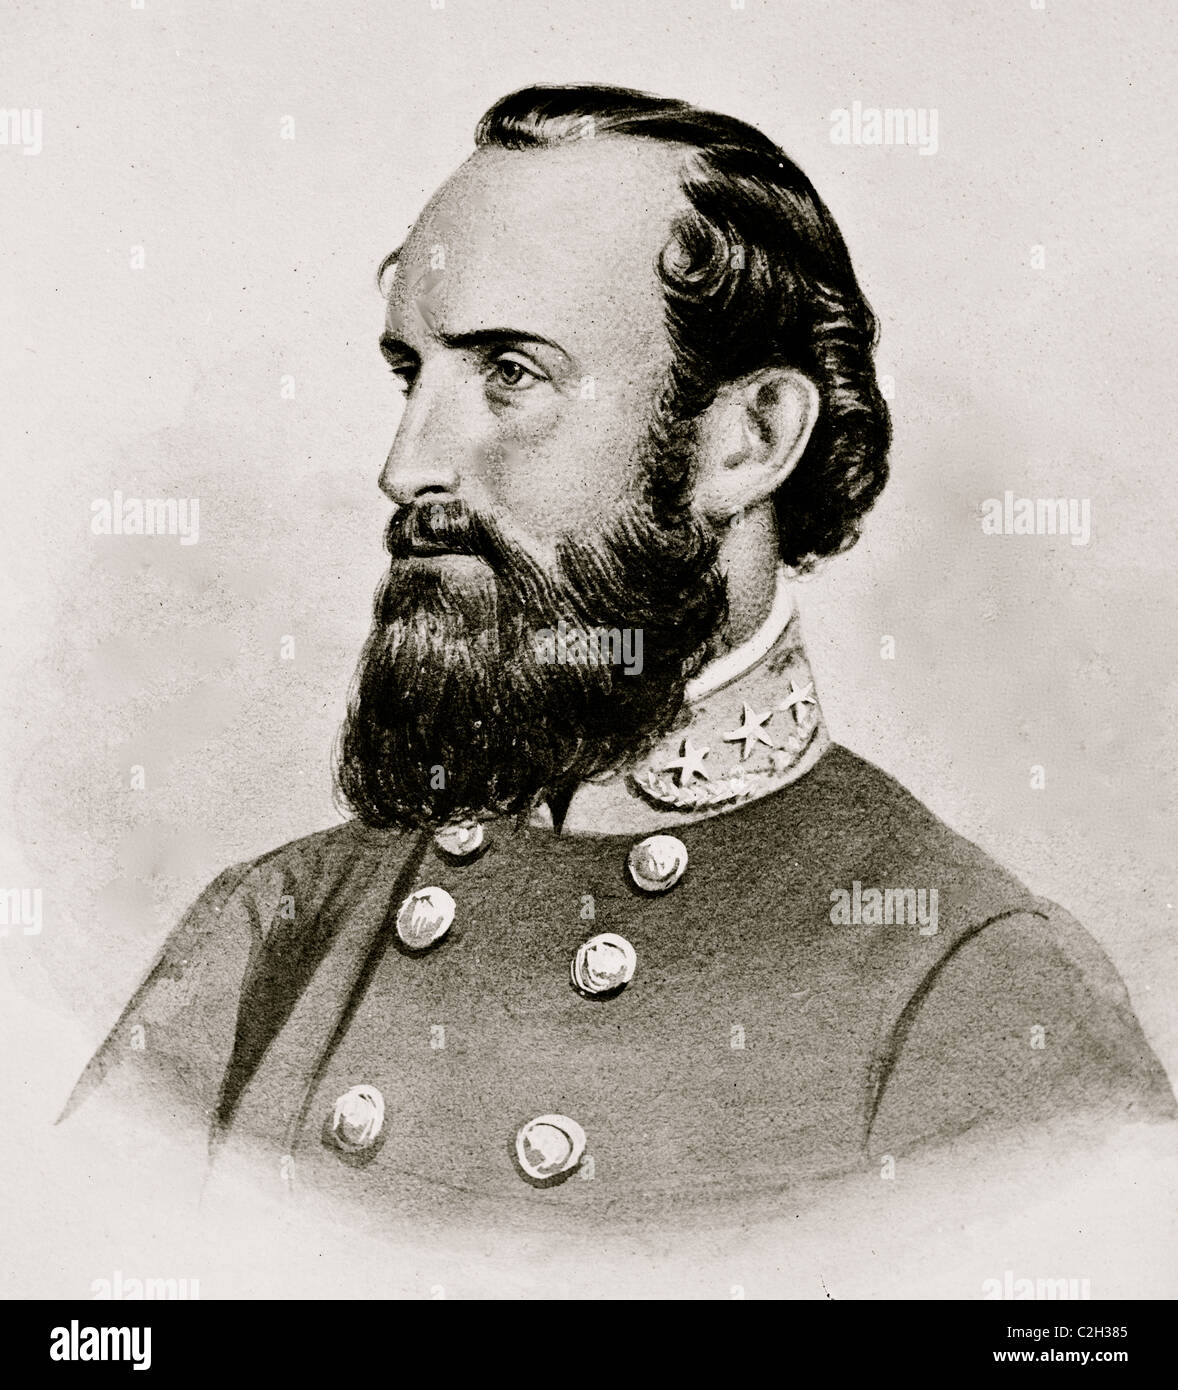 Stonewall Jackson, Confederate General Portrait - Stock Image